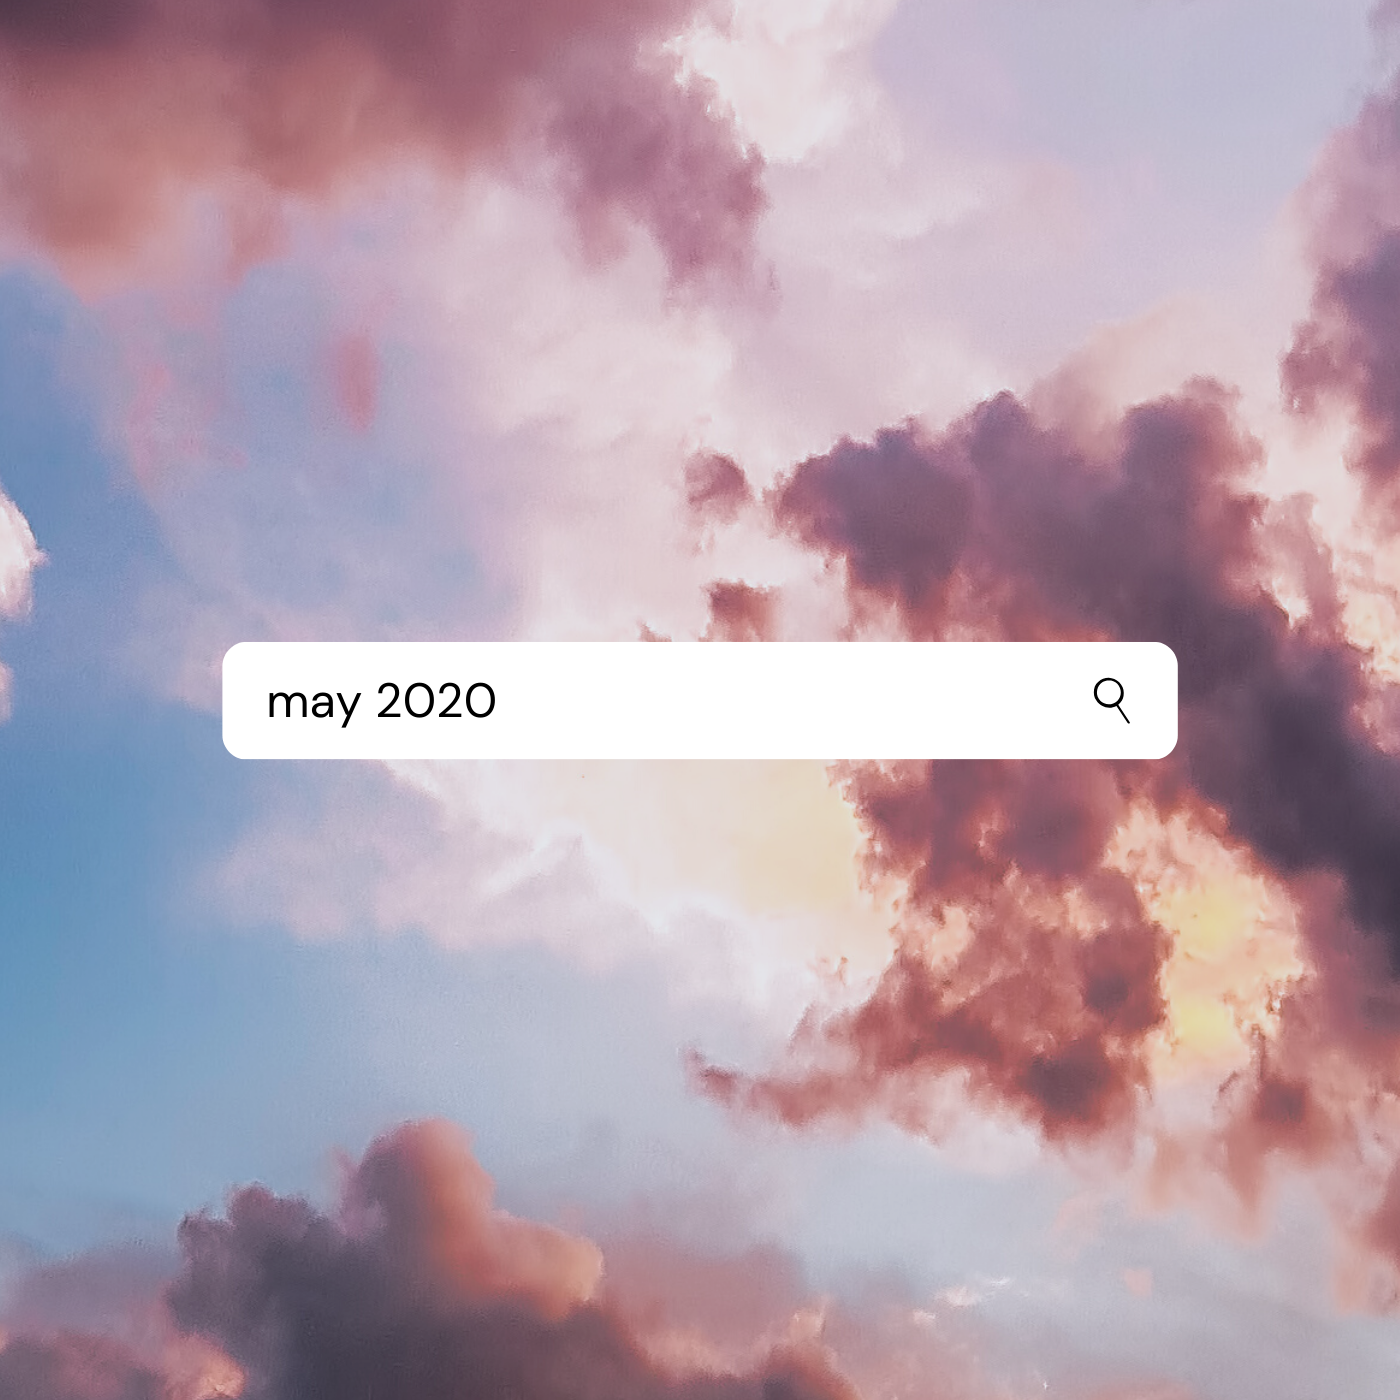 a square image of pink and orange clouds and blue sky with a search box in the center that reads may 2020